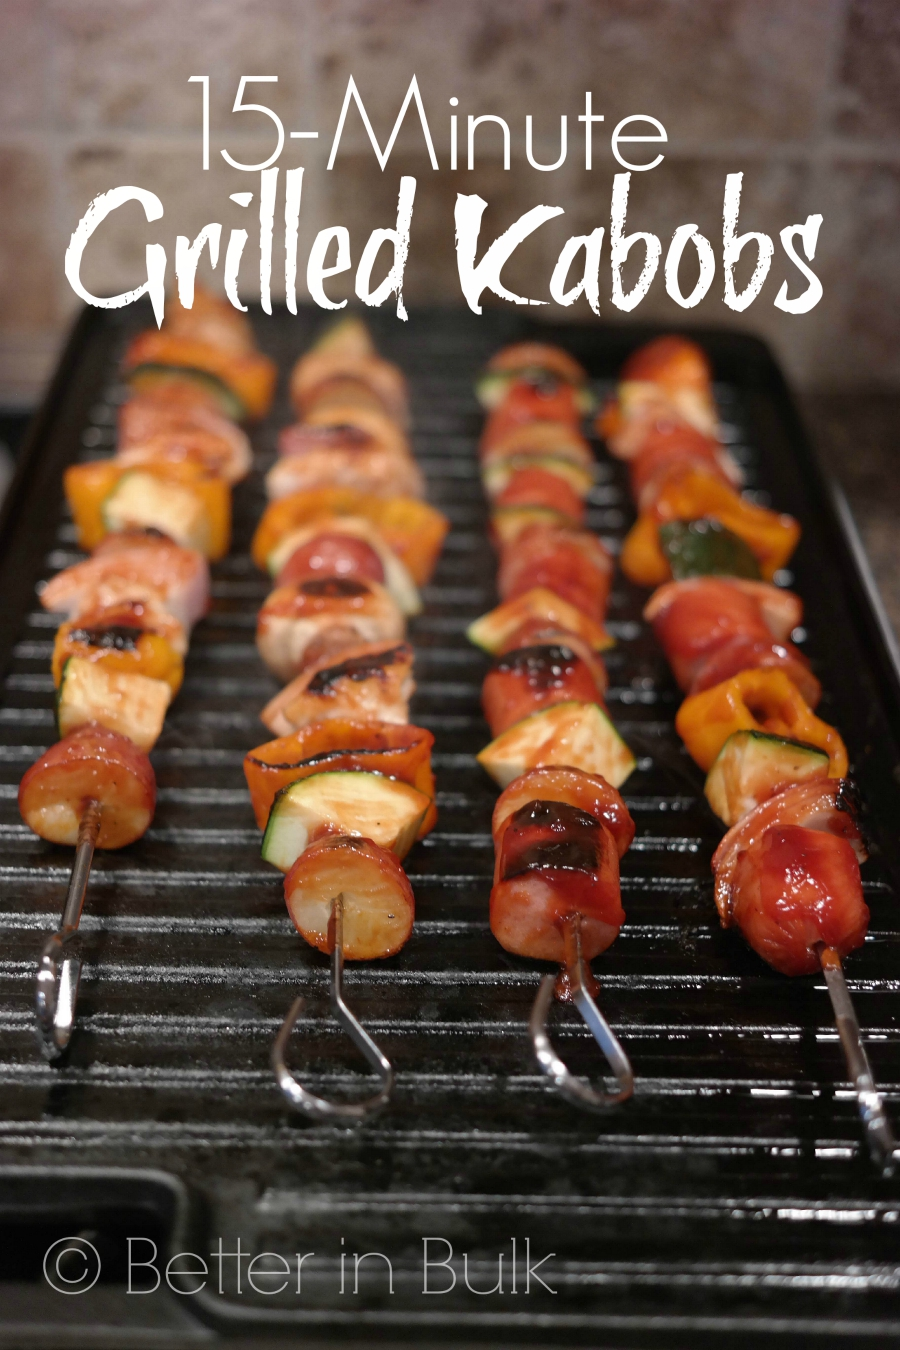 15 minute grilled kabobs